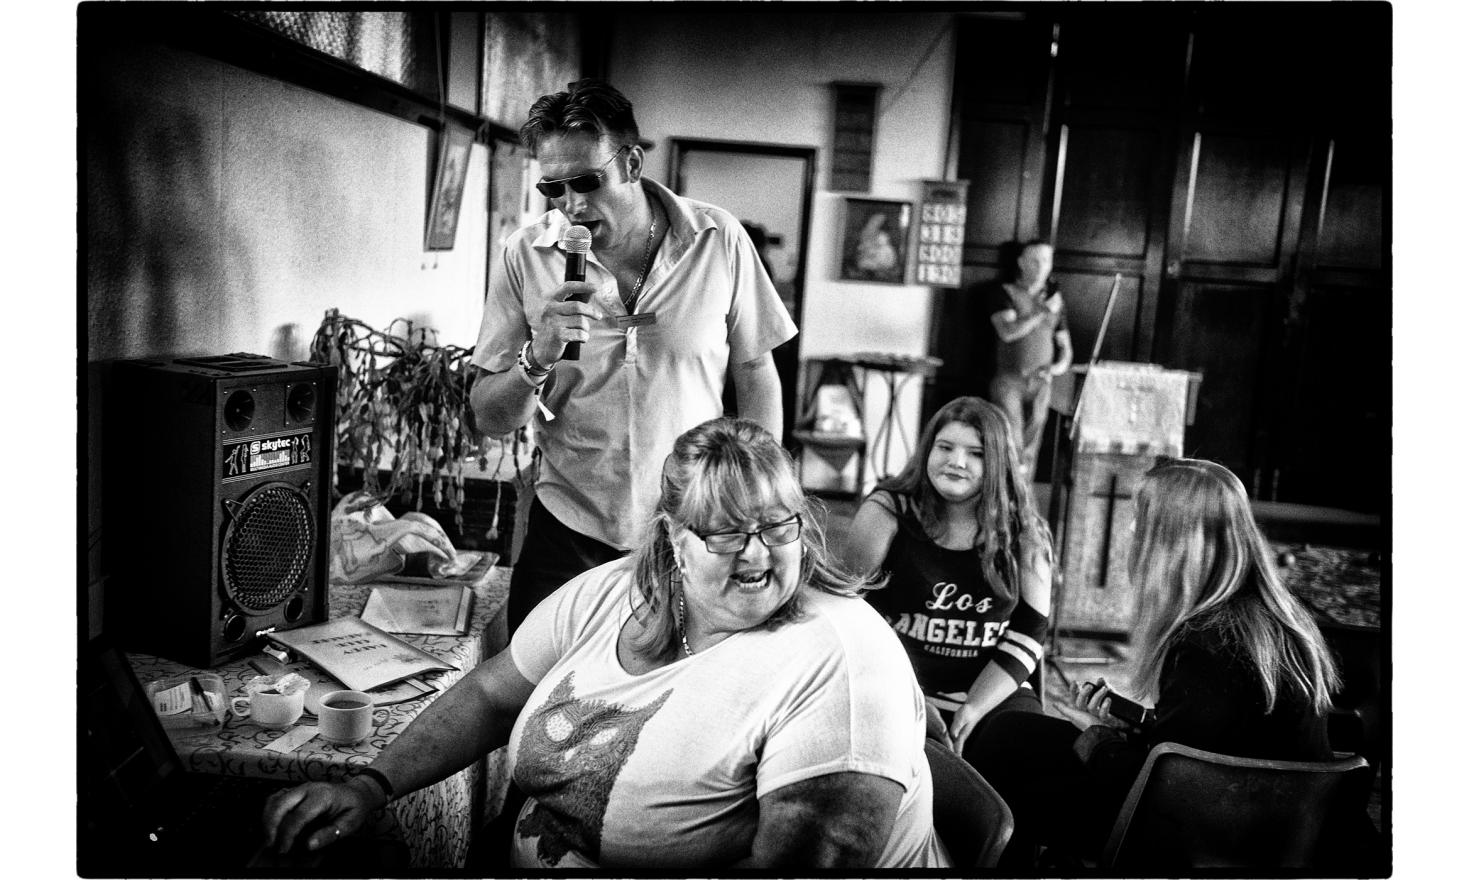 """In Jaywick, there is a man, Danny Slogett who started the""""Jaywick Happy Club"""", where people meet, sing and exchange about the town and their lives . Clacton on sea, England. July 2016."""